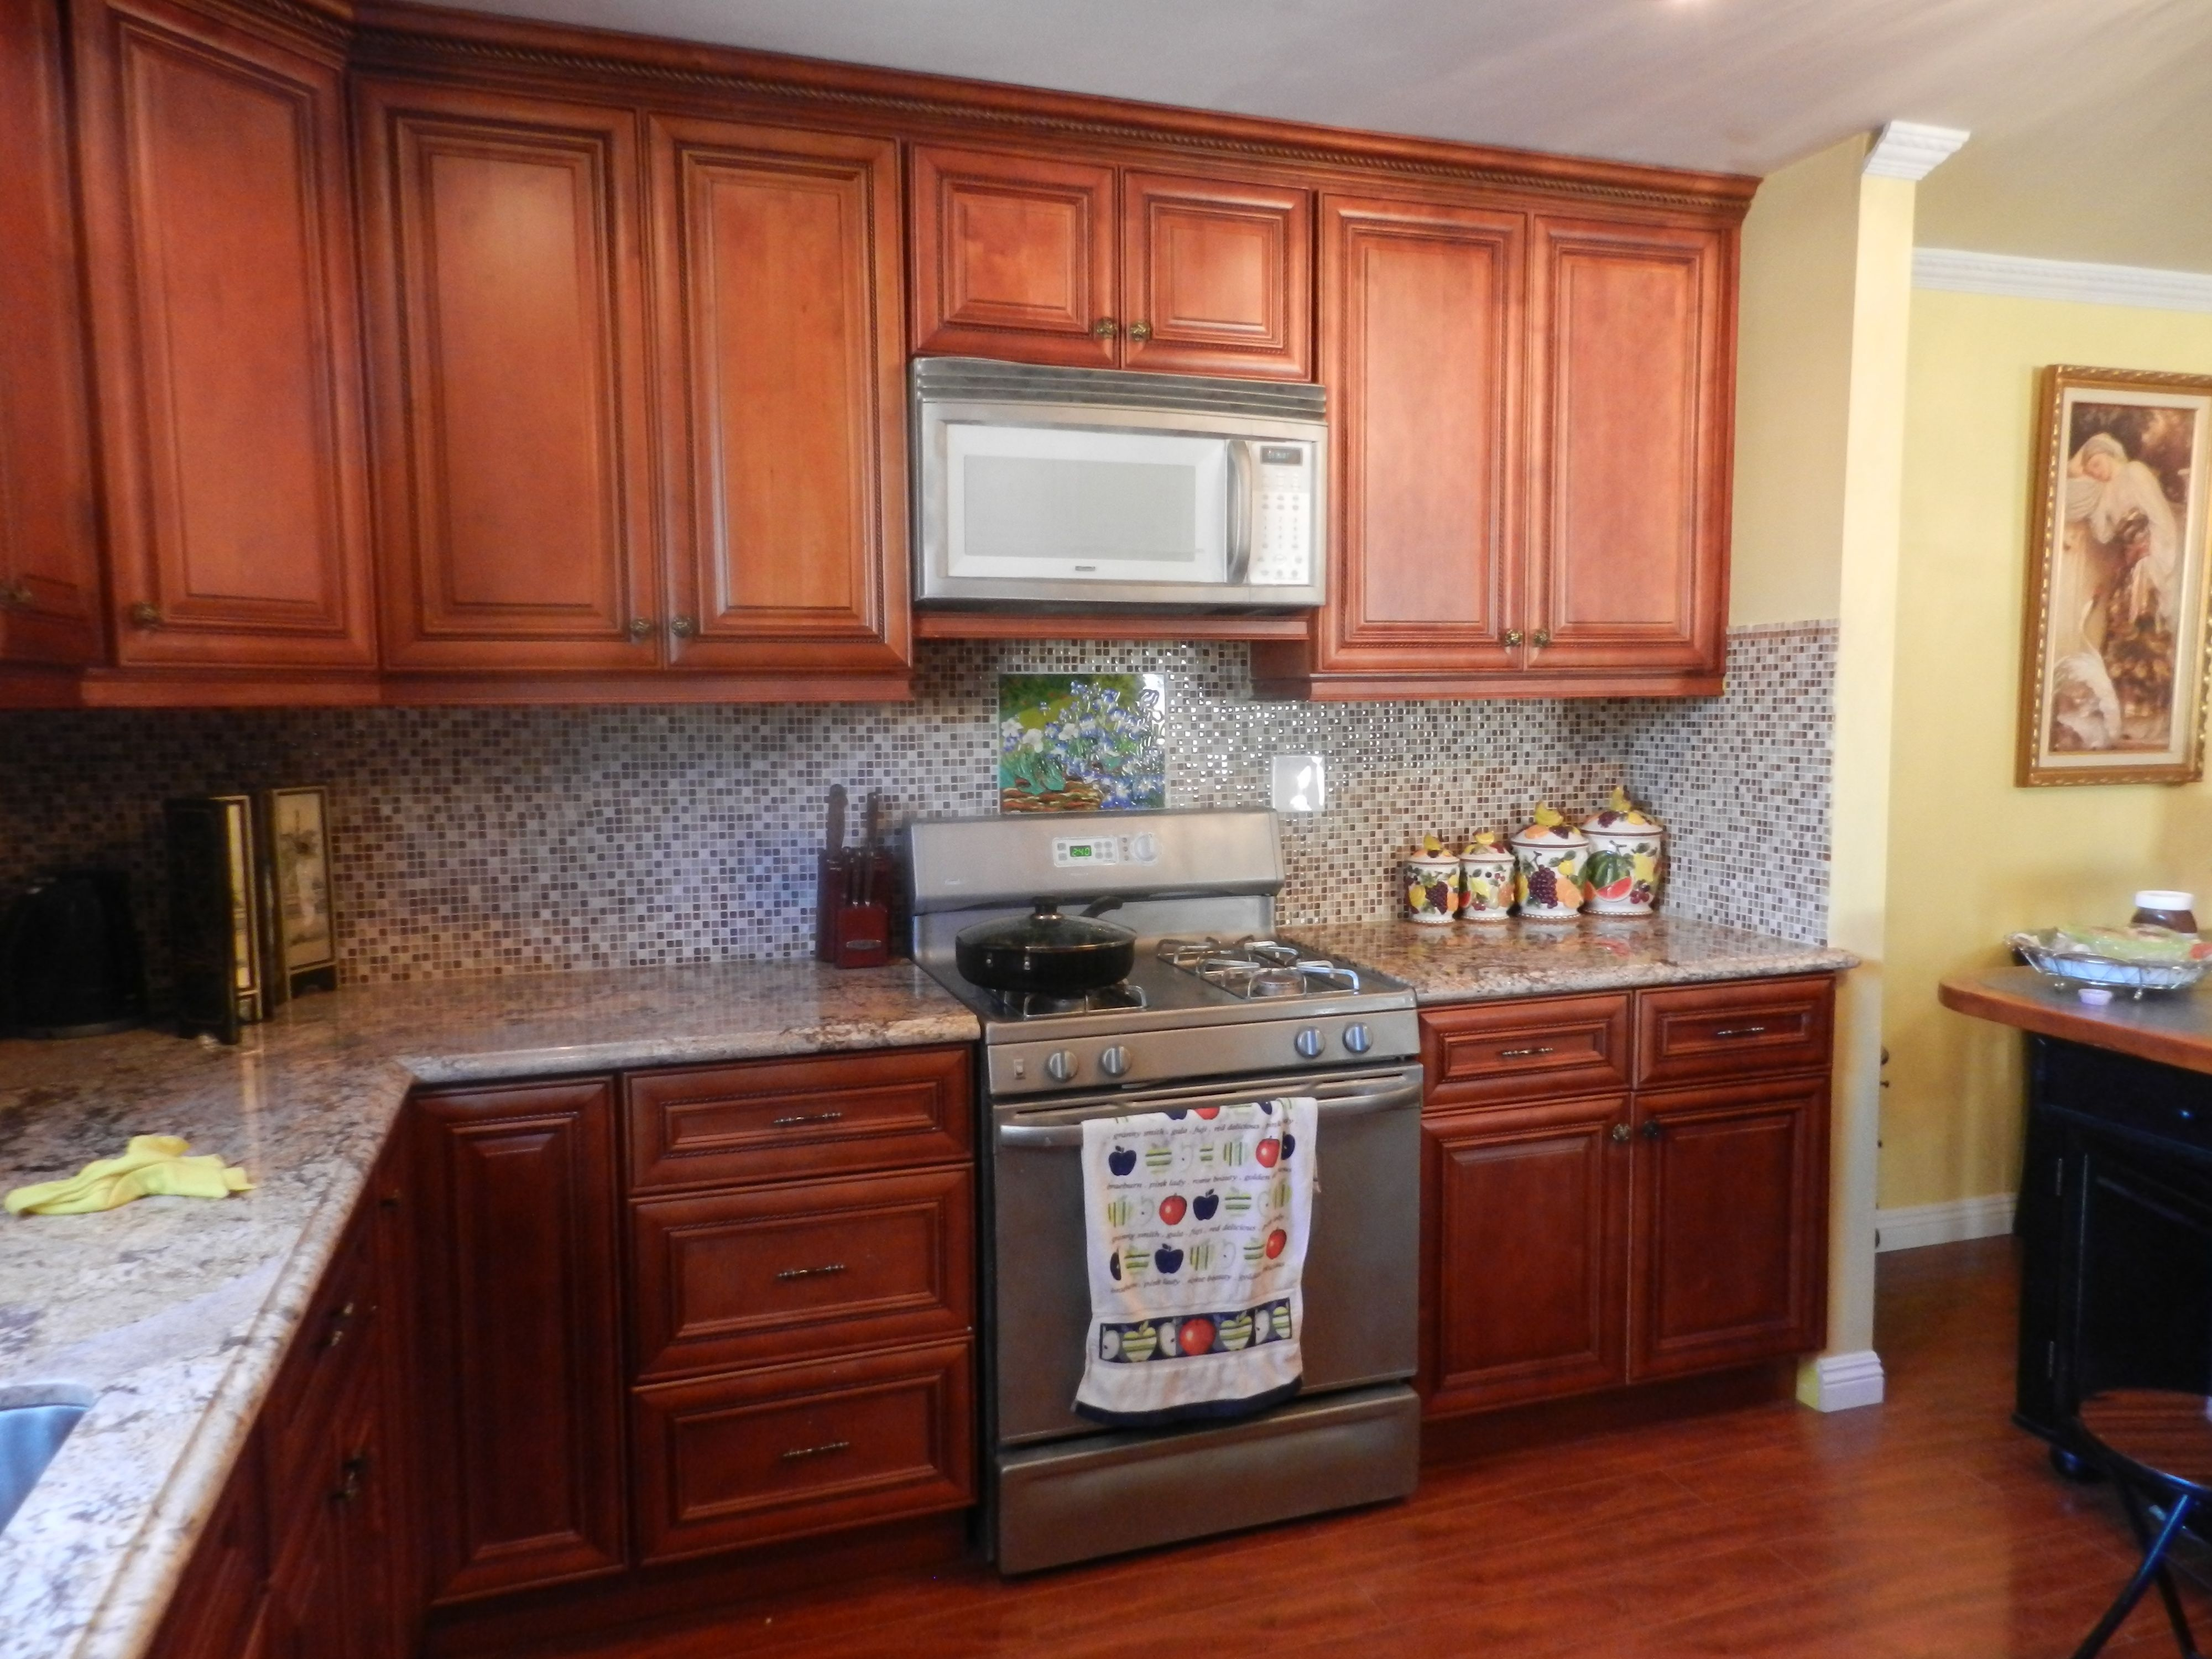 The Mocha Rope By Lilit M From Reseda Ca Cabinets Home Kitchen Decor Maplewood Highqualit Assembled Kitchen Cabinets Kitchen Remodel Kitchen Cabinets